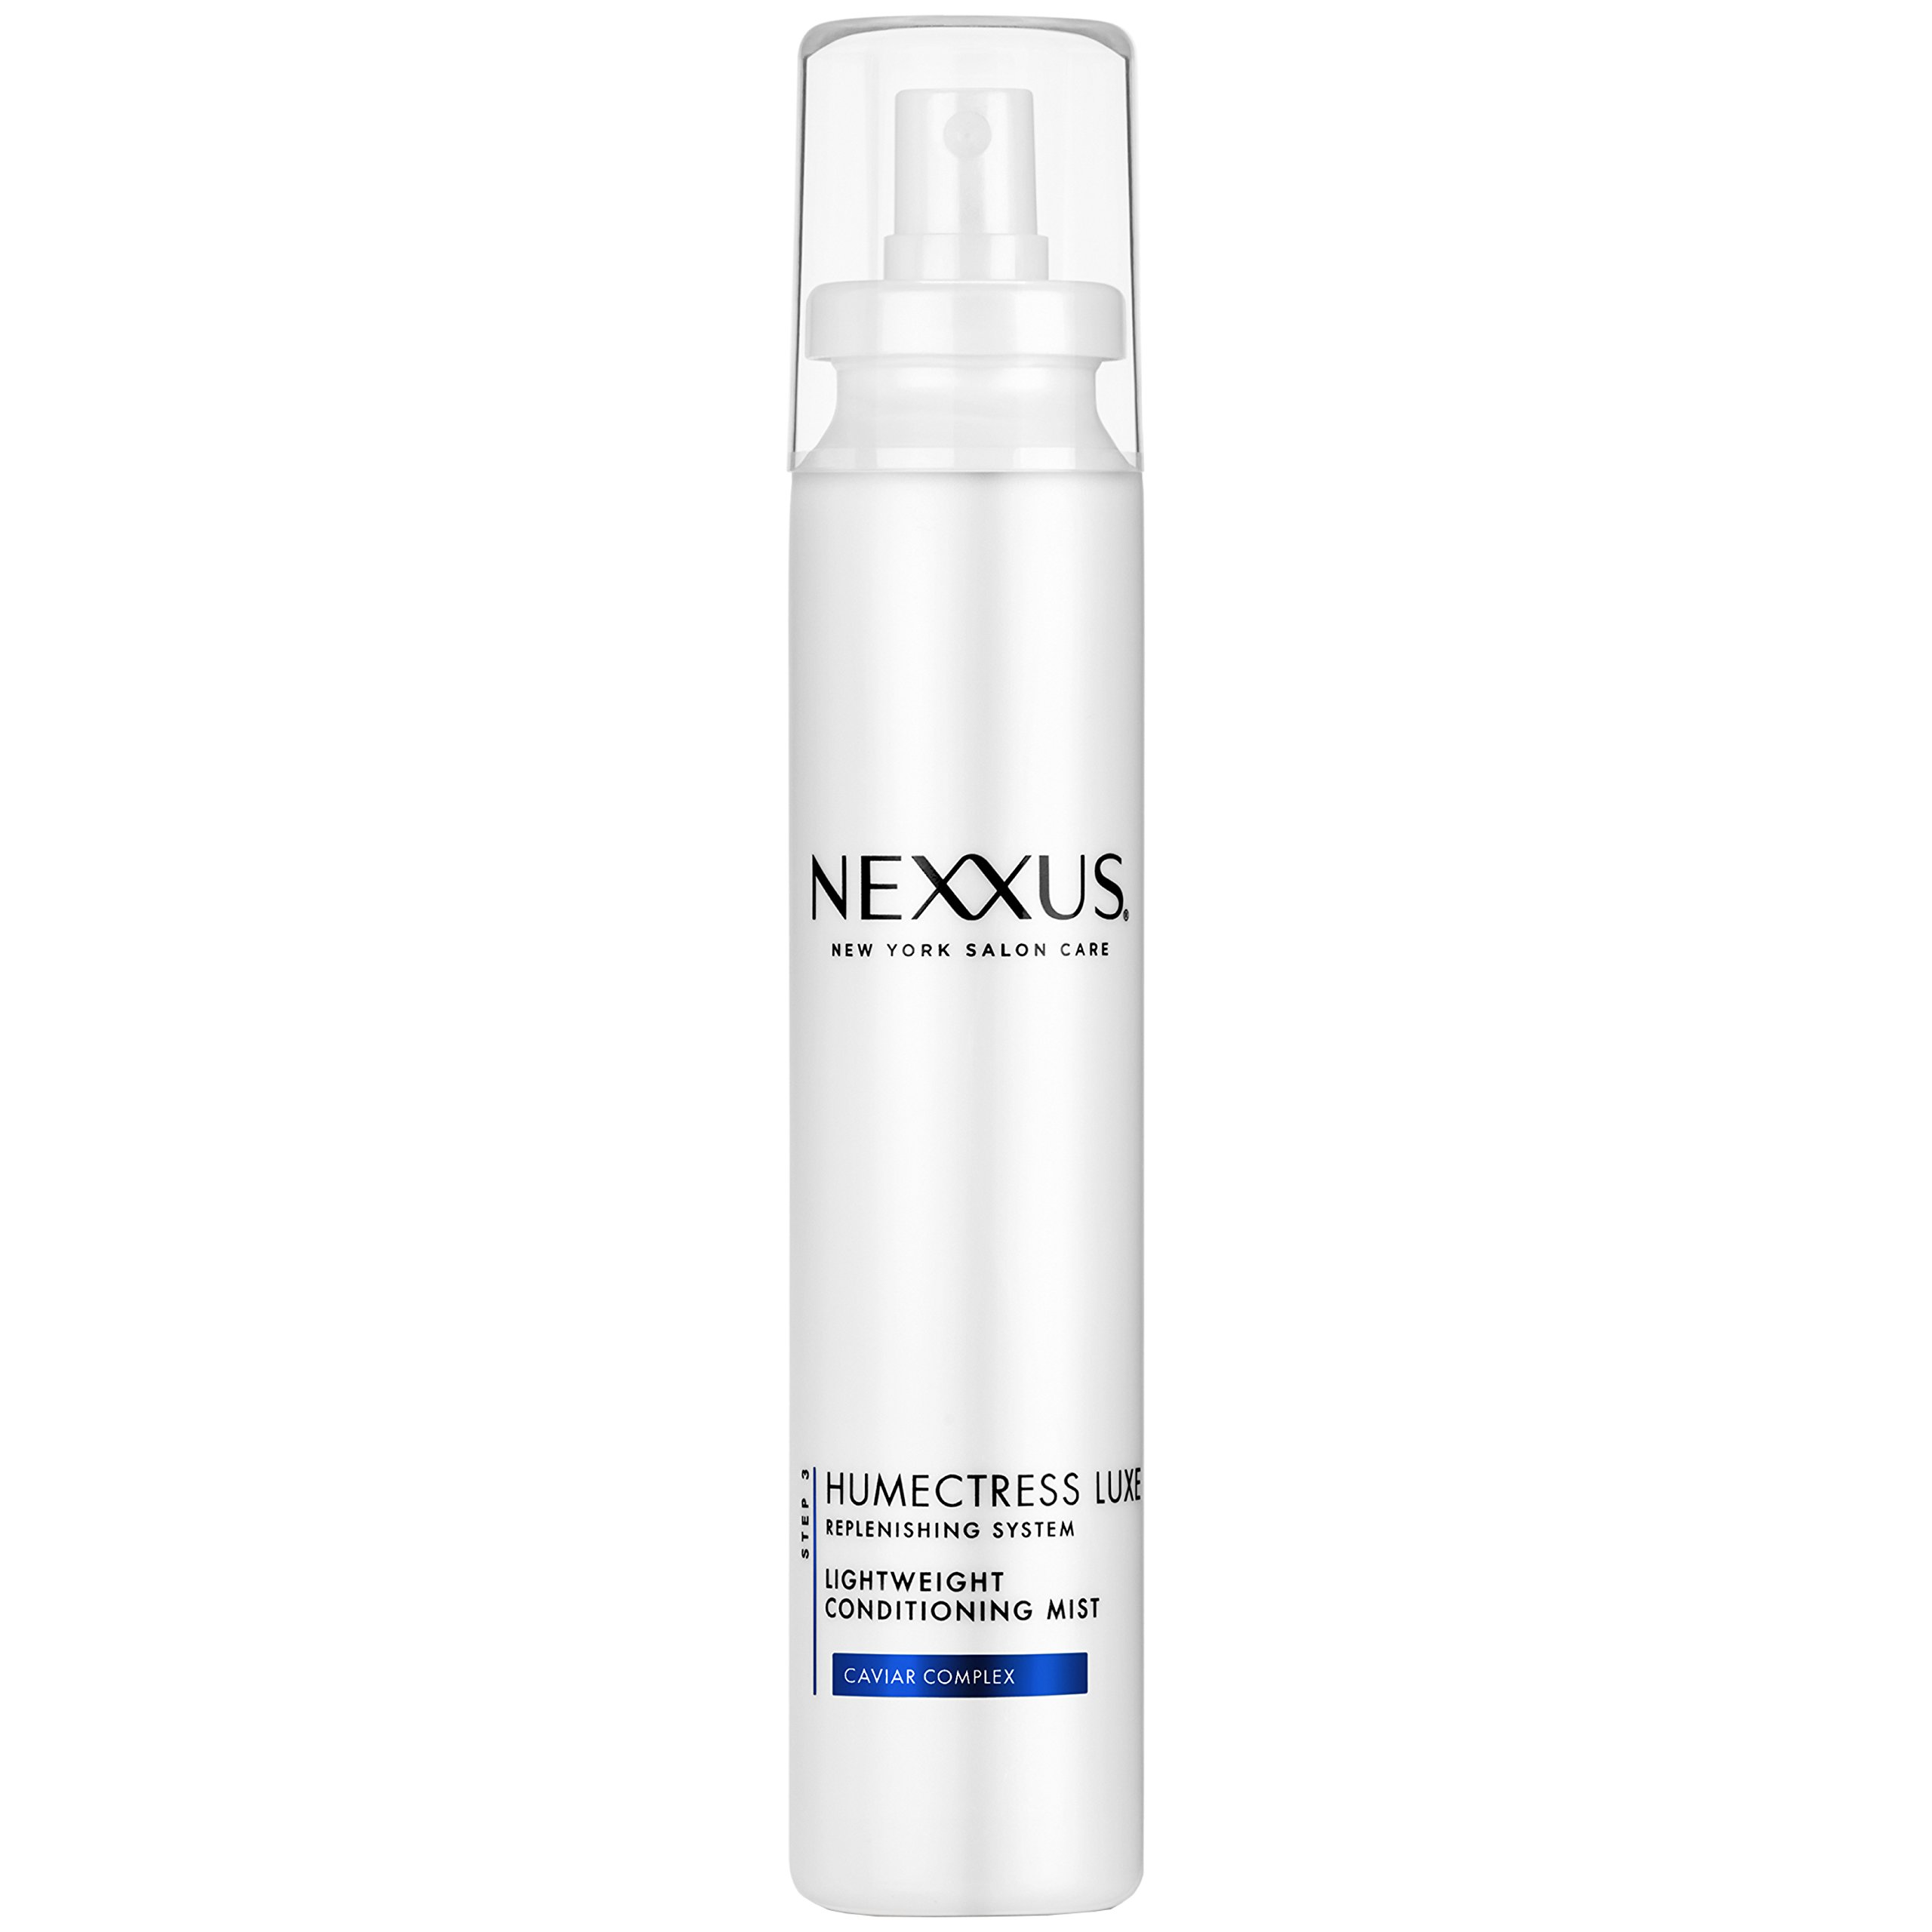 Nexxus Humectress Conditioning Mist, for Normal to Dry Hair, 5.1 oz